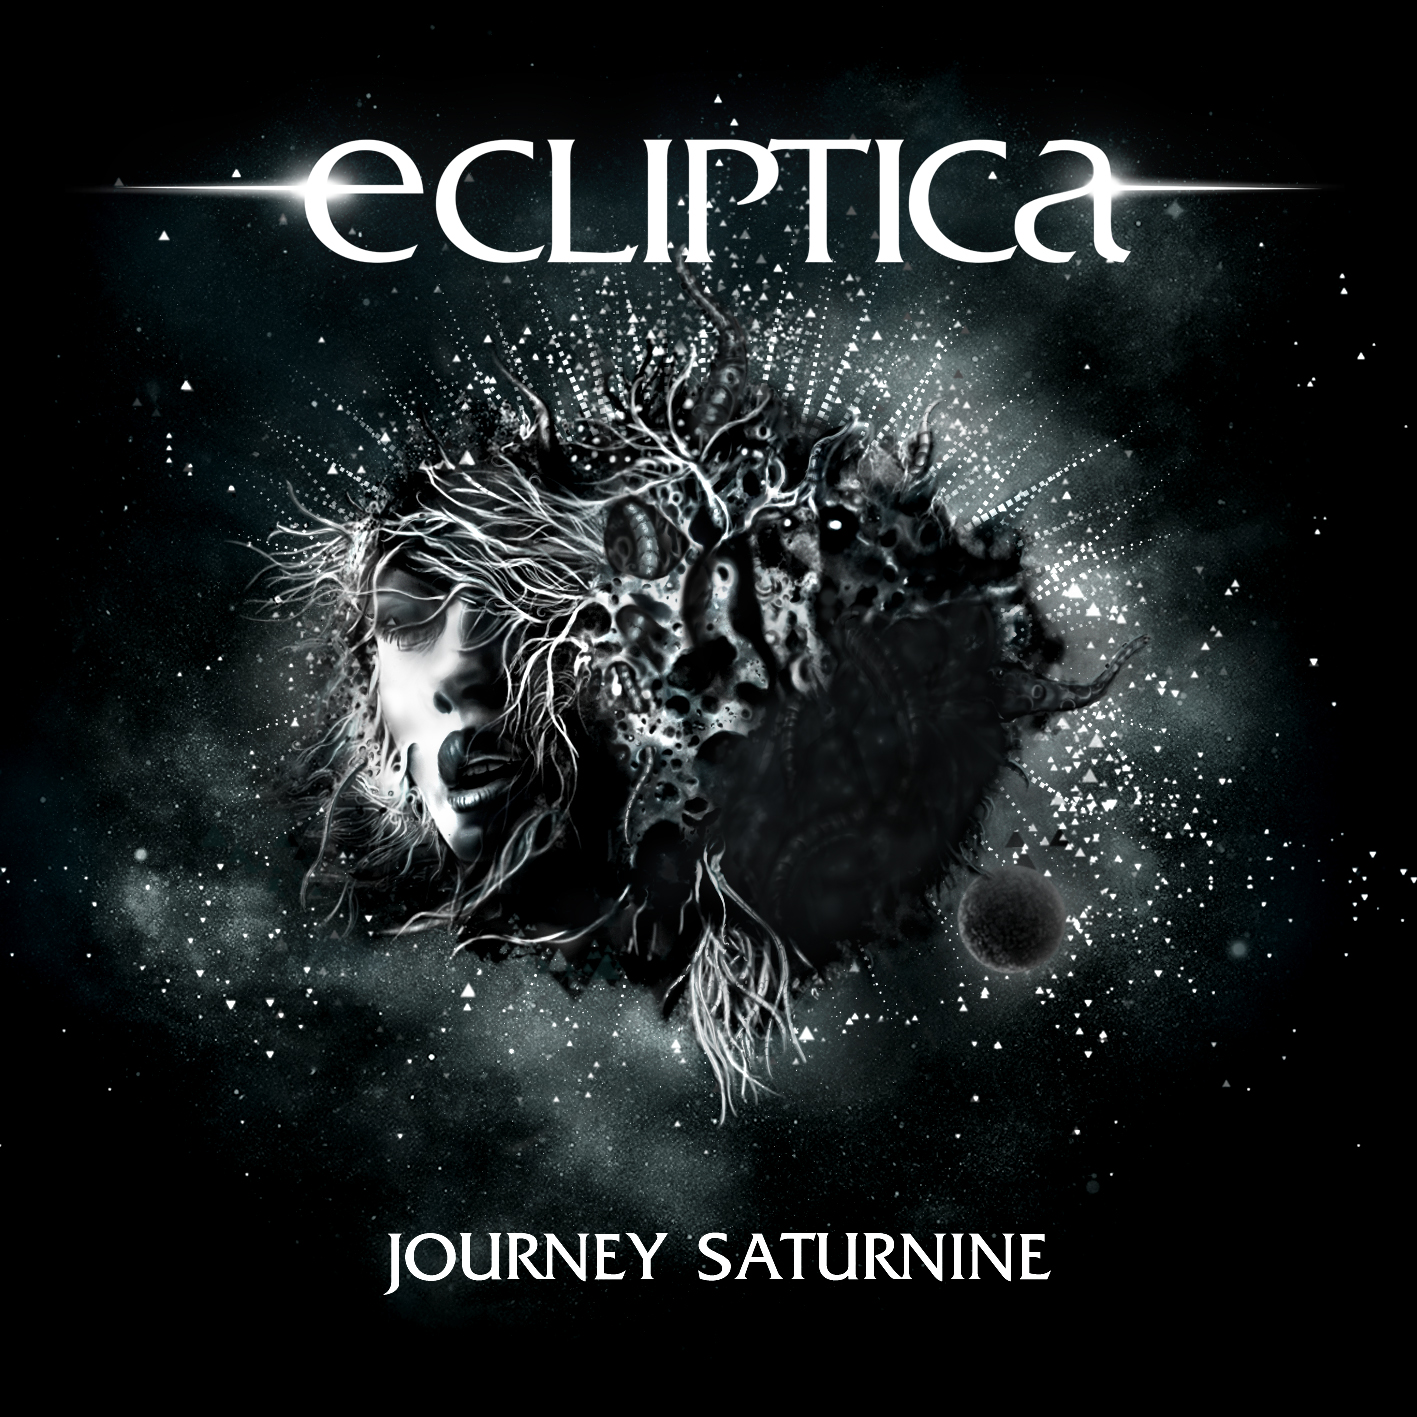 ECLIPTICA - Journey Saturnine // Album, 2012/01/09 // MMP001 // EAN: 9008798069514